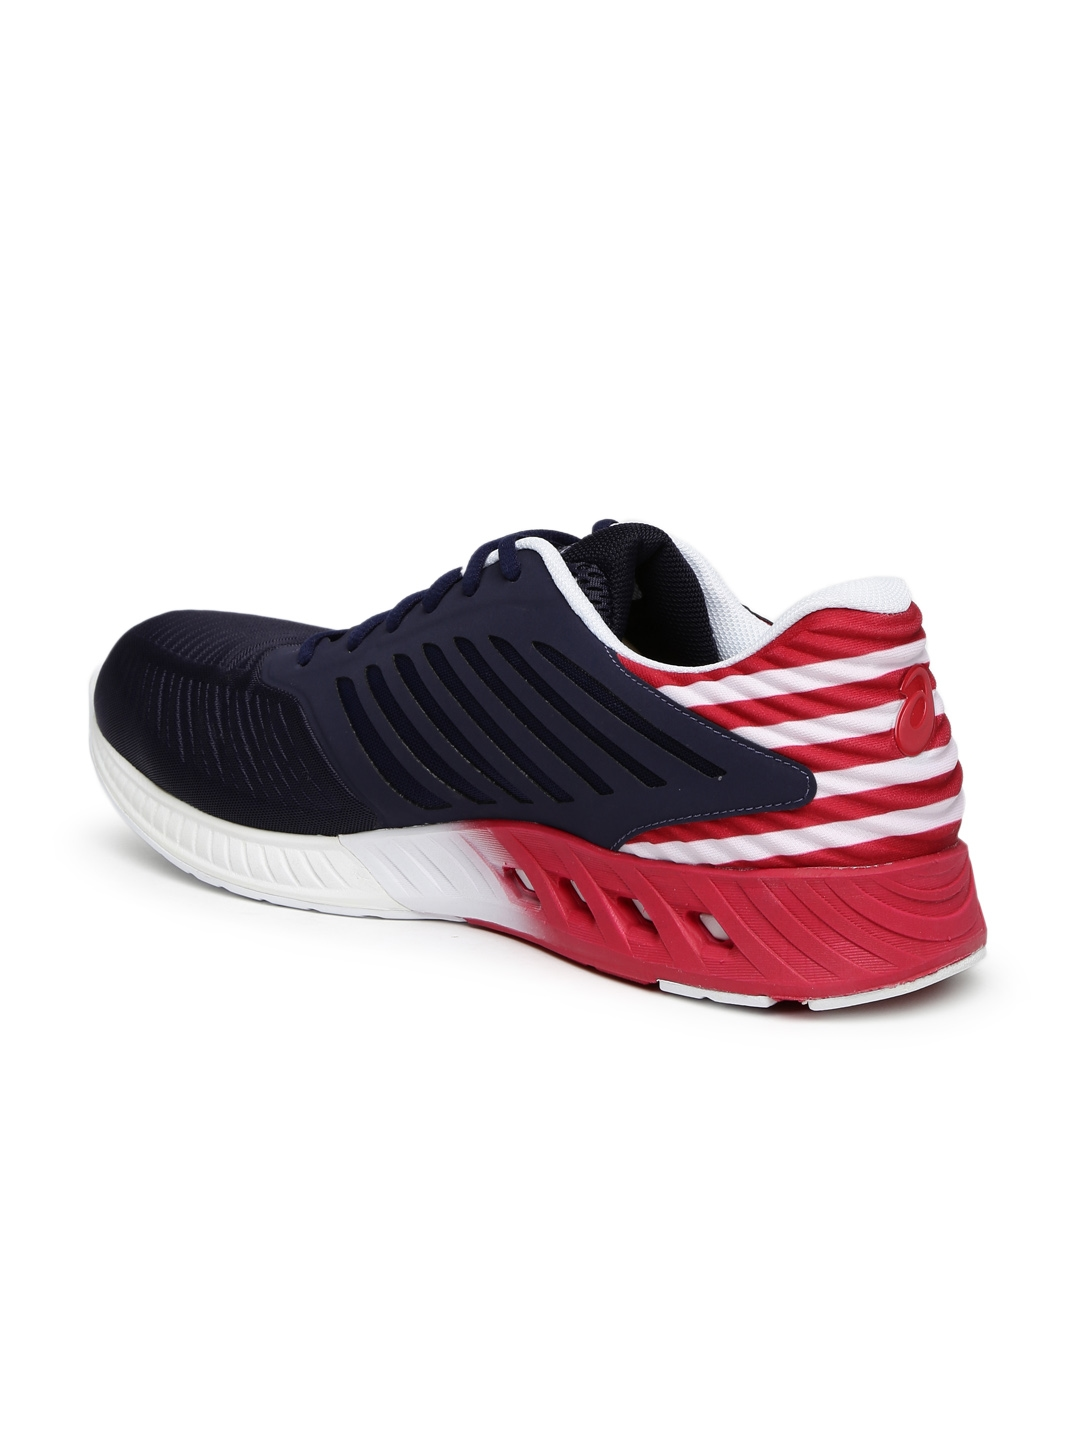 64b00143f8c2 Buy ASICS Unisex Navy   Red FuzeX Country Pack Running Shoes ...